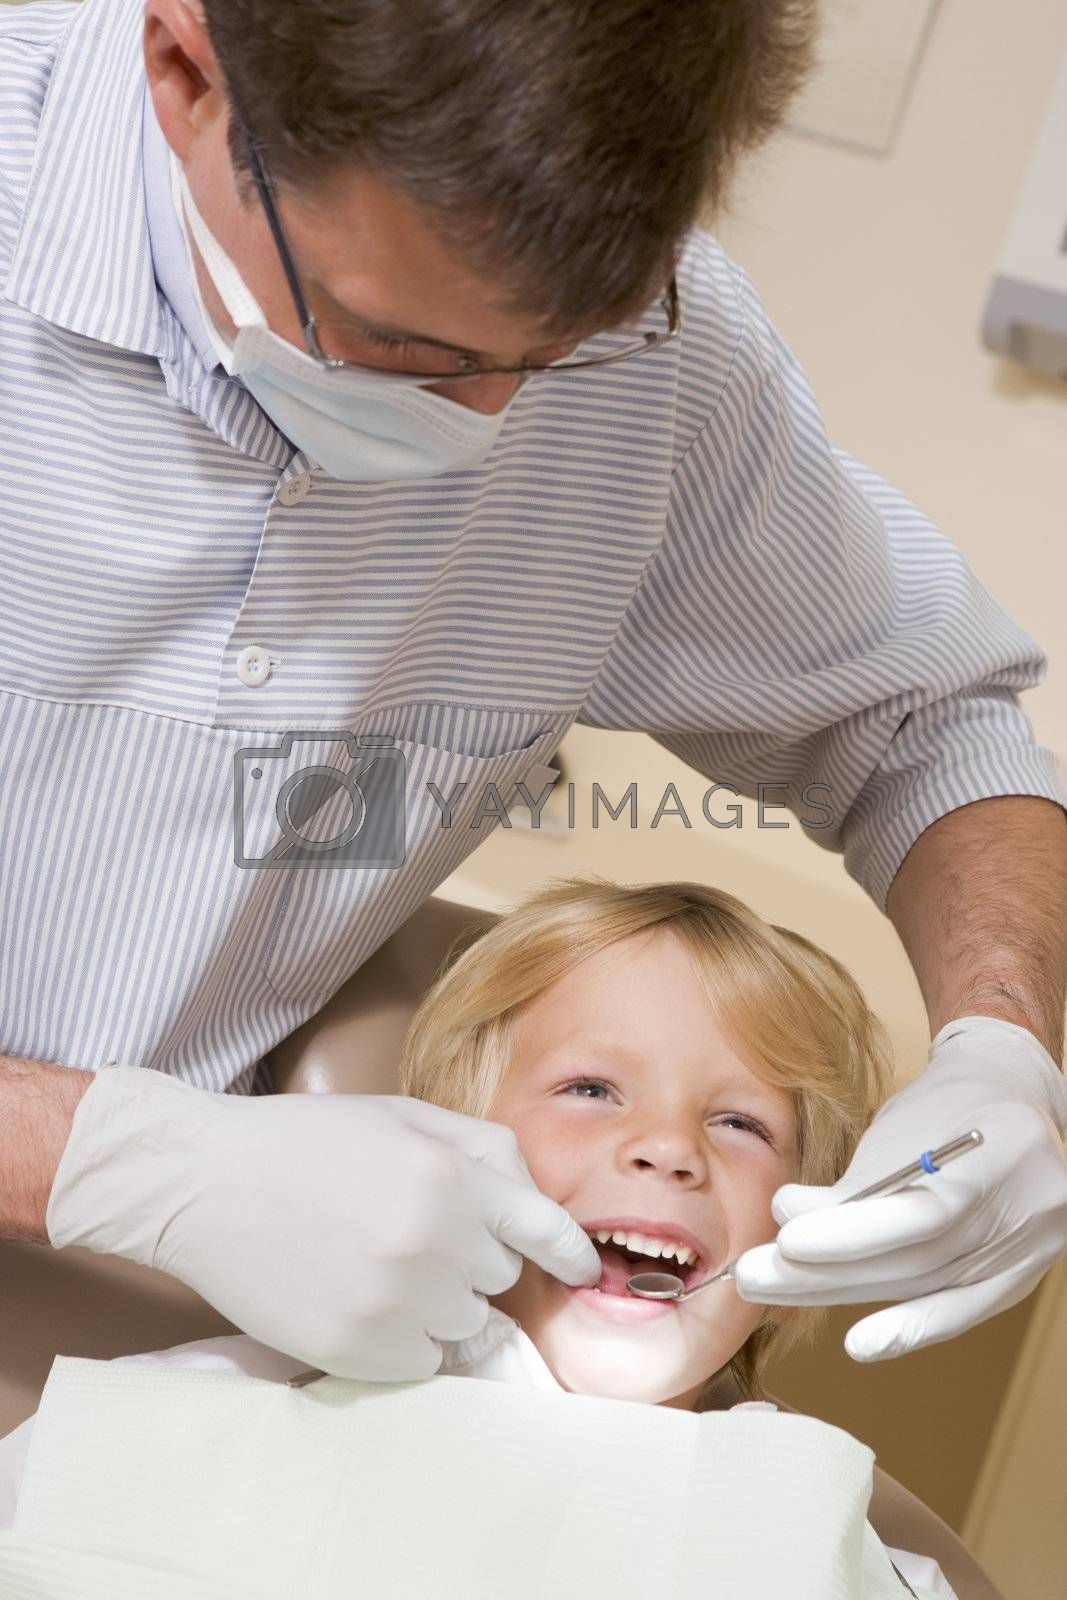 Dentist in exam room with young boy in chair